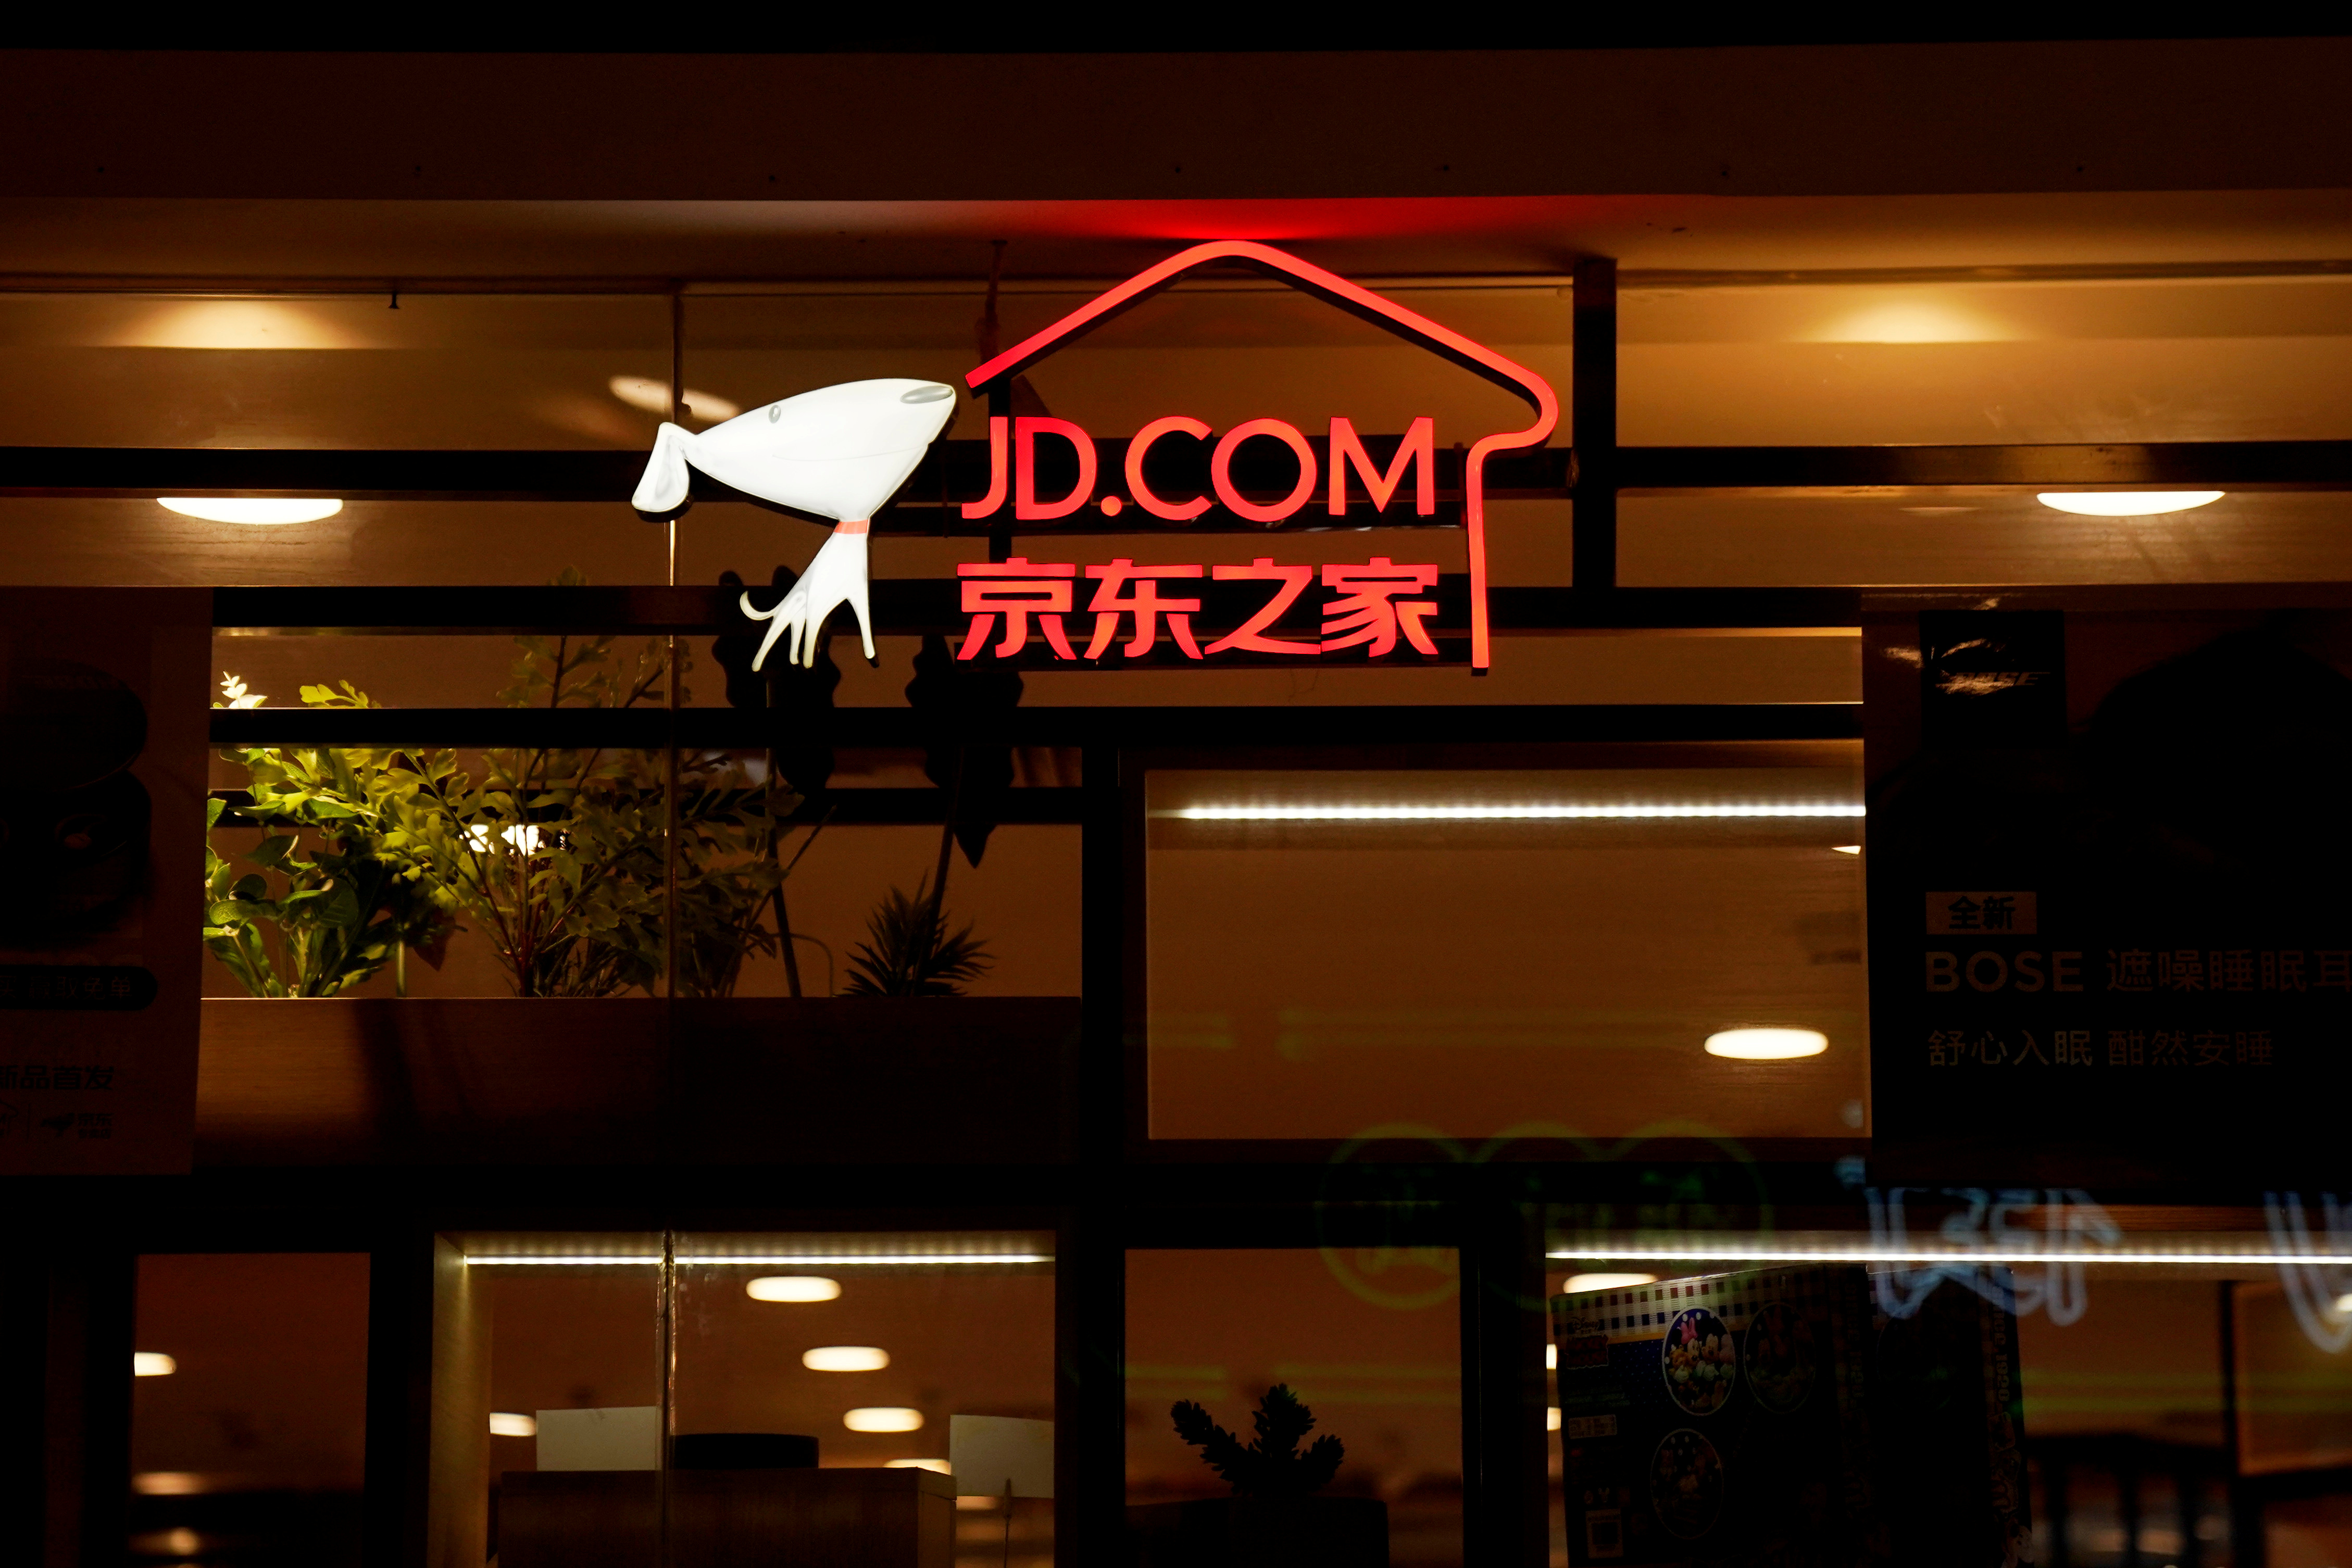 A sign of China's e-commerce company JD.com is seen at its shop at a mall in Shanghai, China October 26, 2018. REUTERS/Aly Song